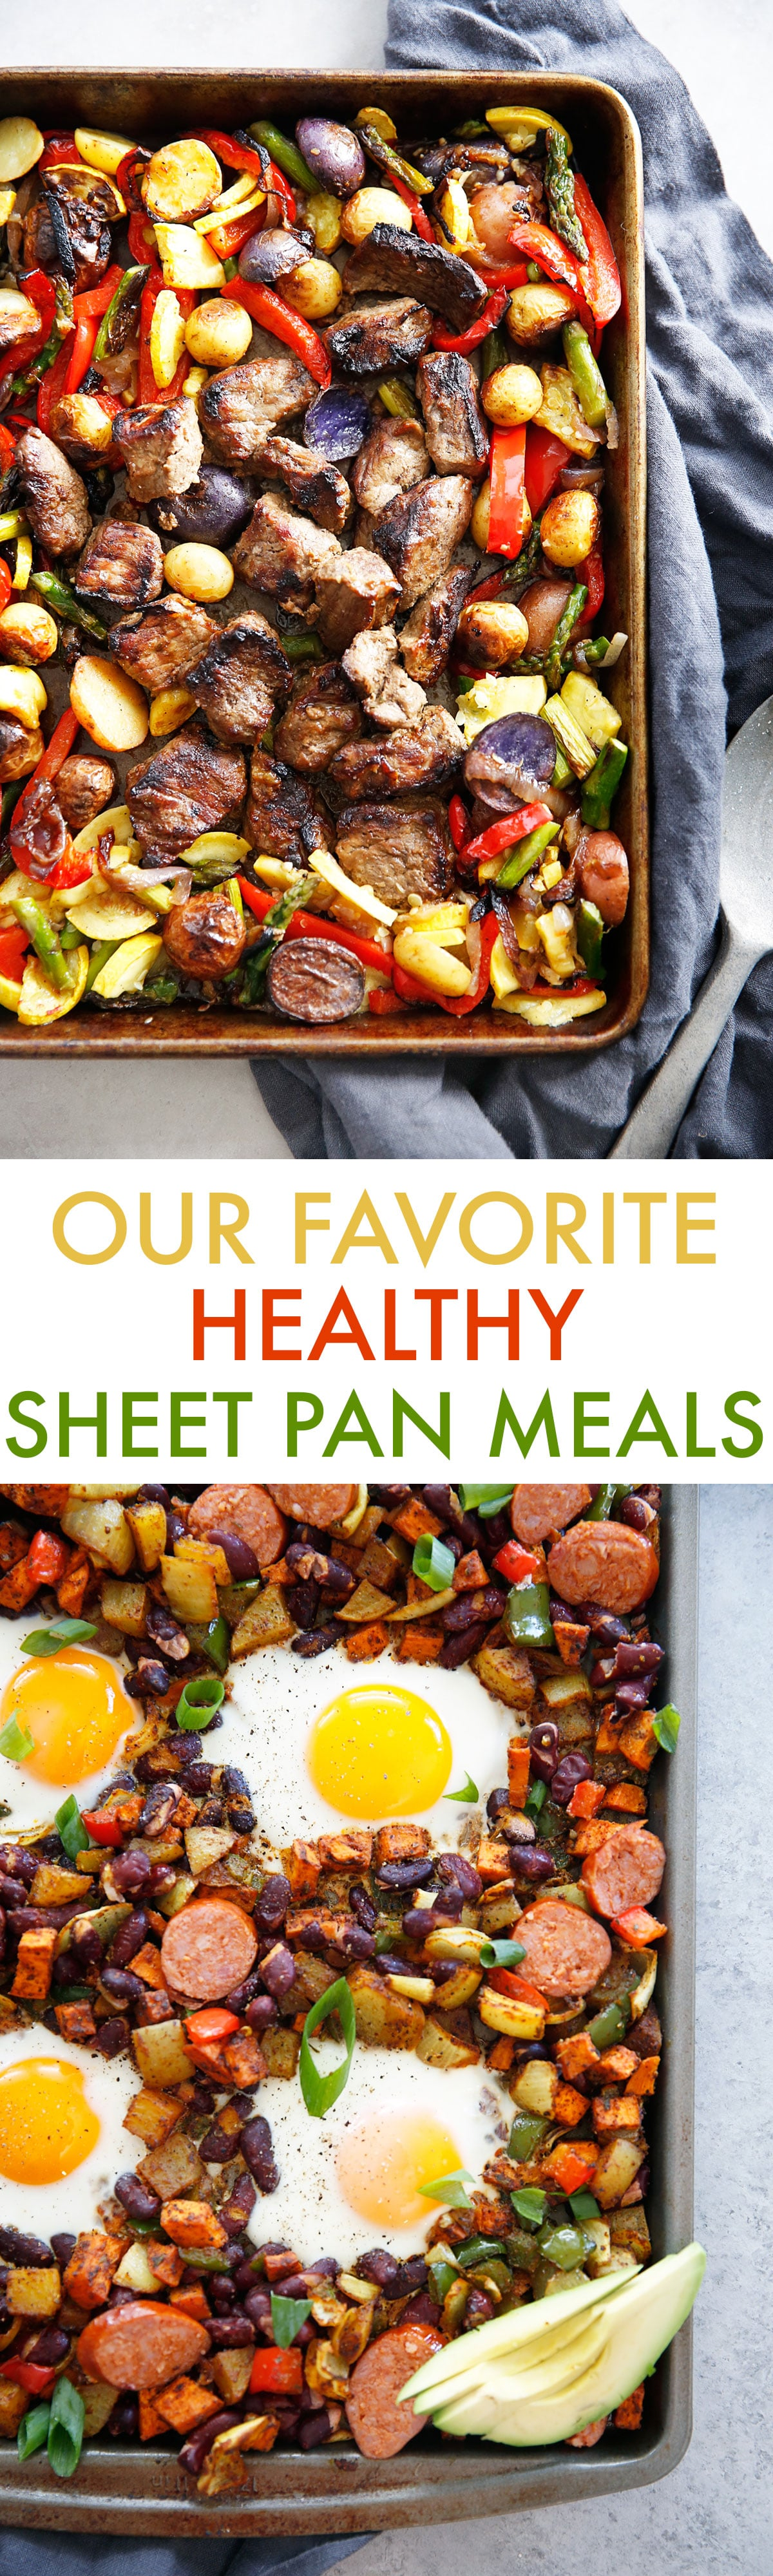 Healthy Sheet Pan Meals